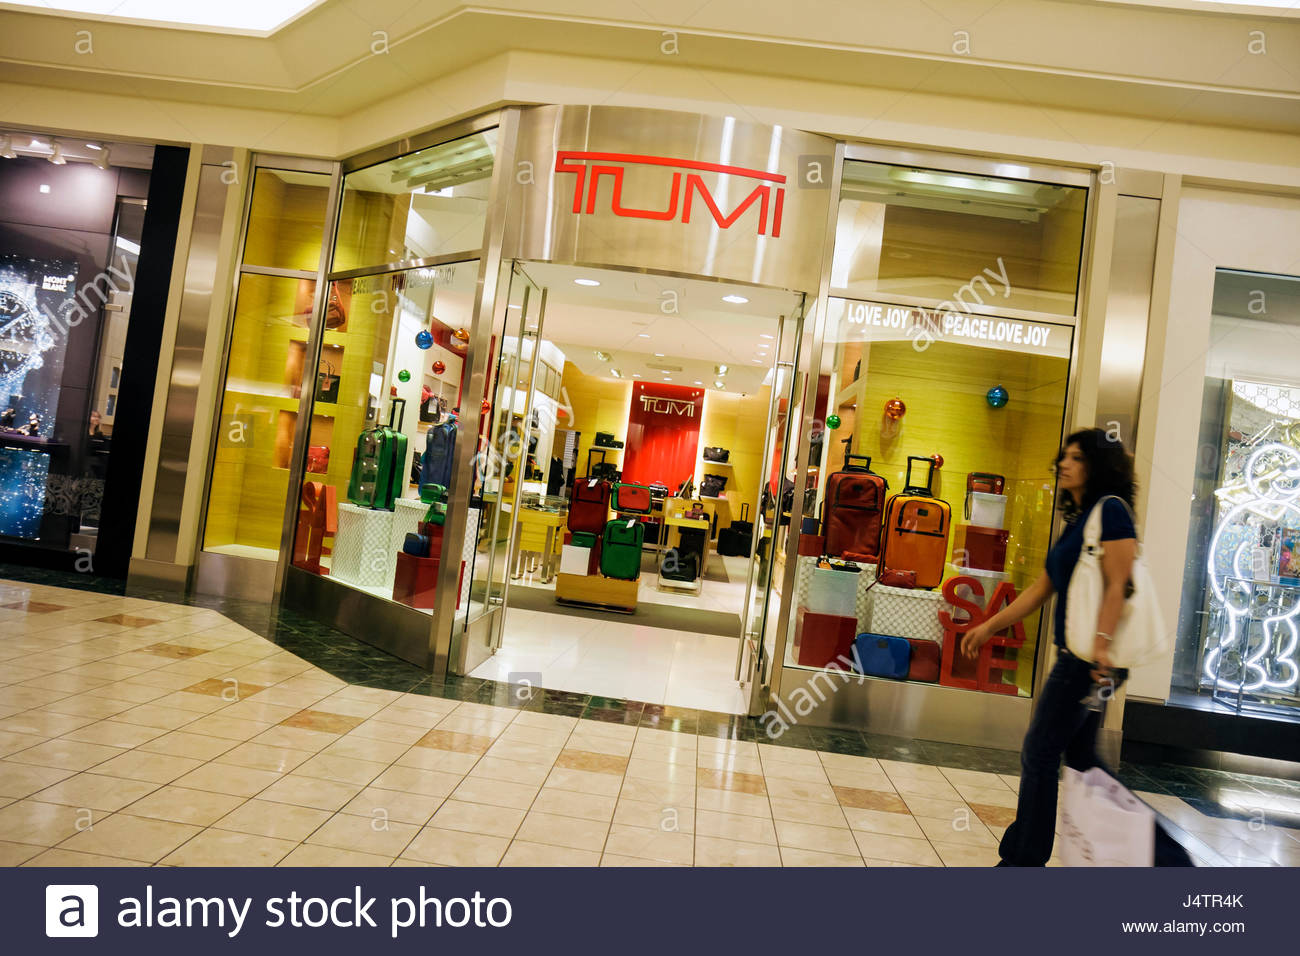 Palm Beach Florida Gardens The Gardens Mall Tumi store business retail shopping high-end luggage brand entrance - Stock Image